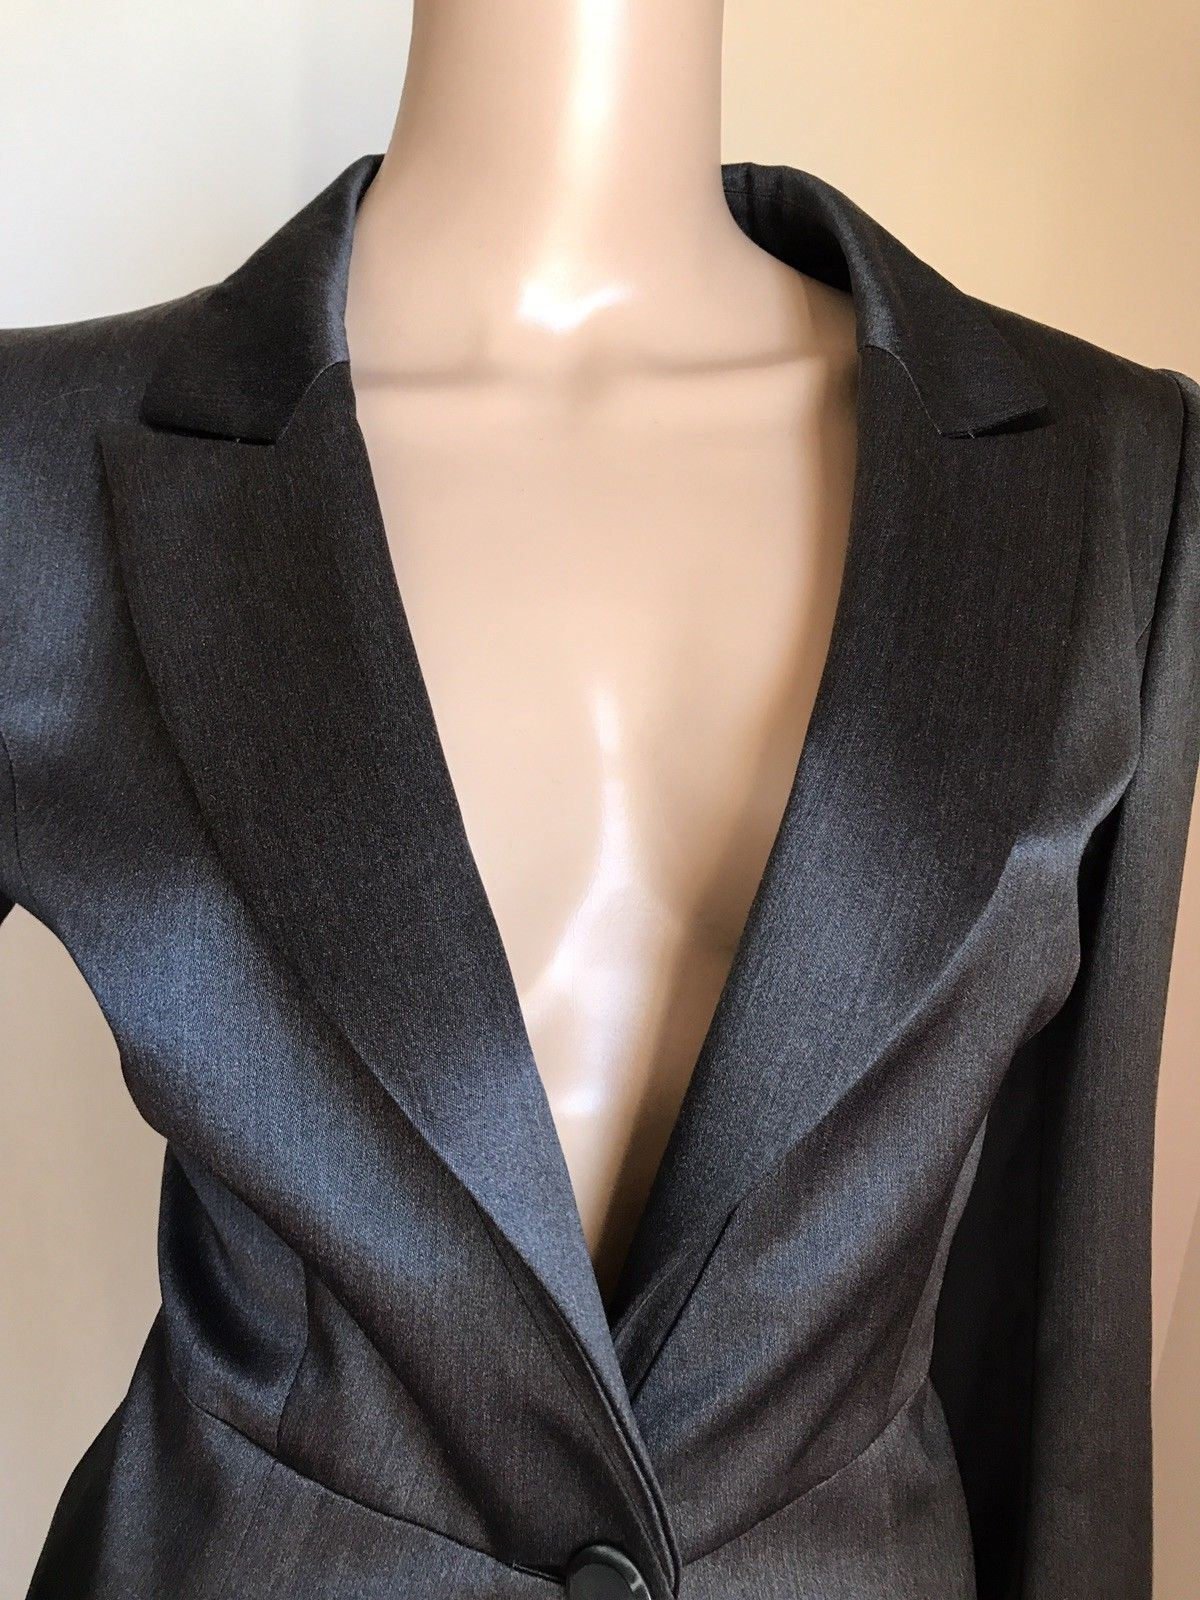 New $4995 Giorgio Armani Women's Jacket Blazer DK Gray 16 US ( 46 Eu ) Italy